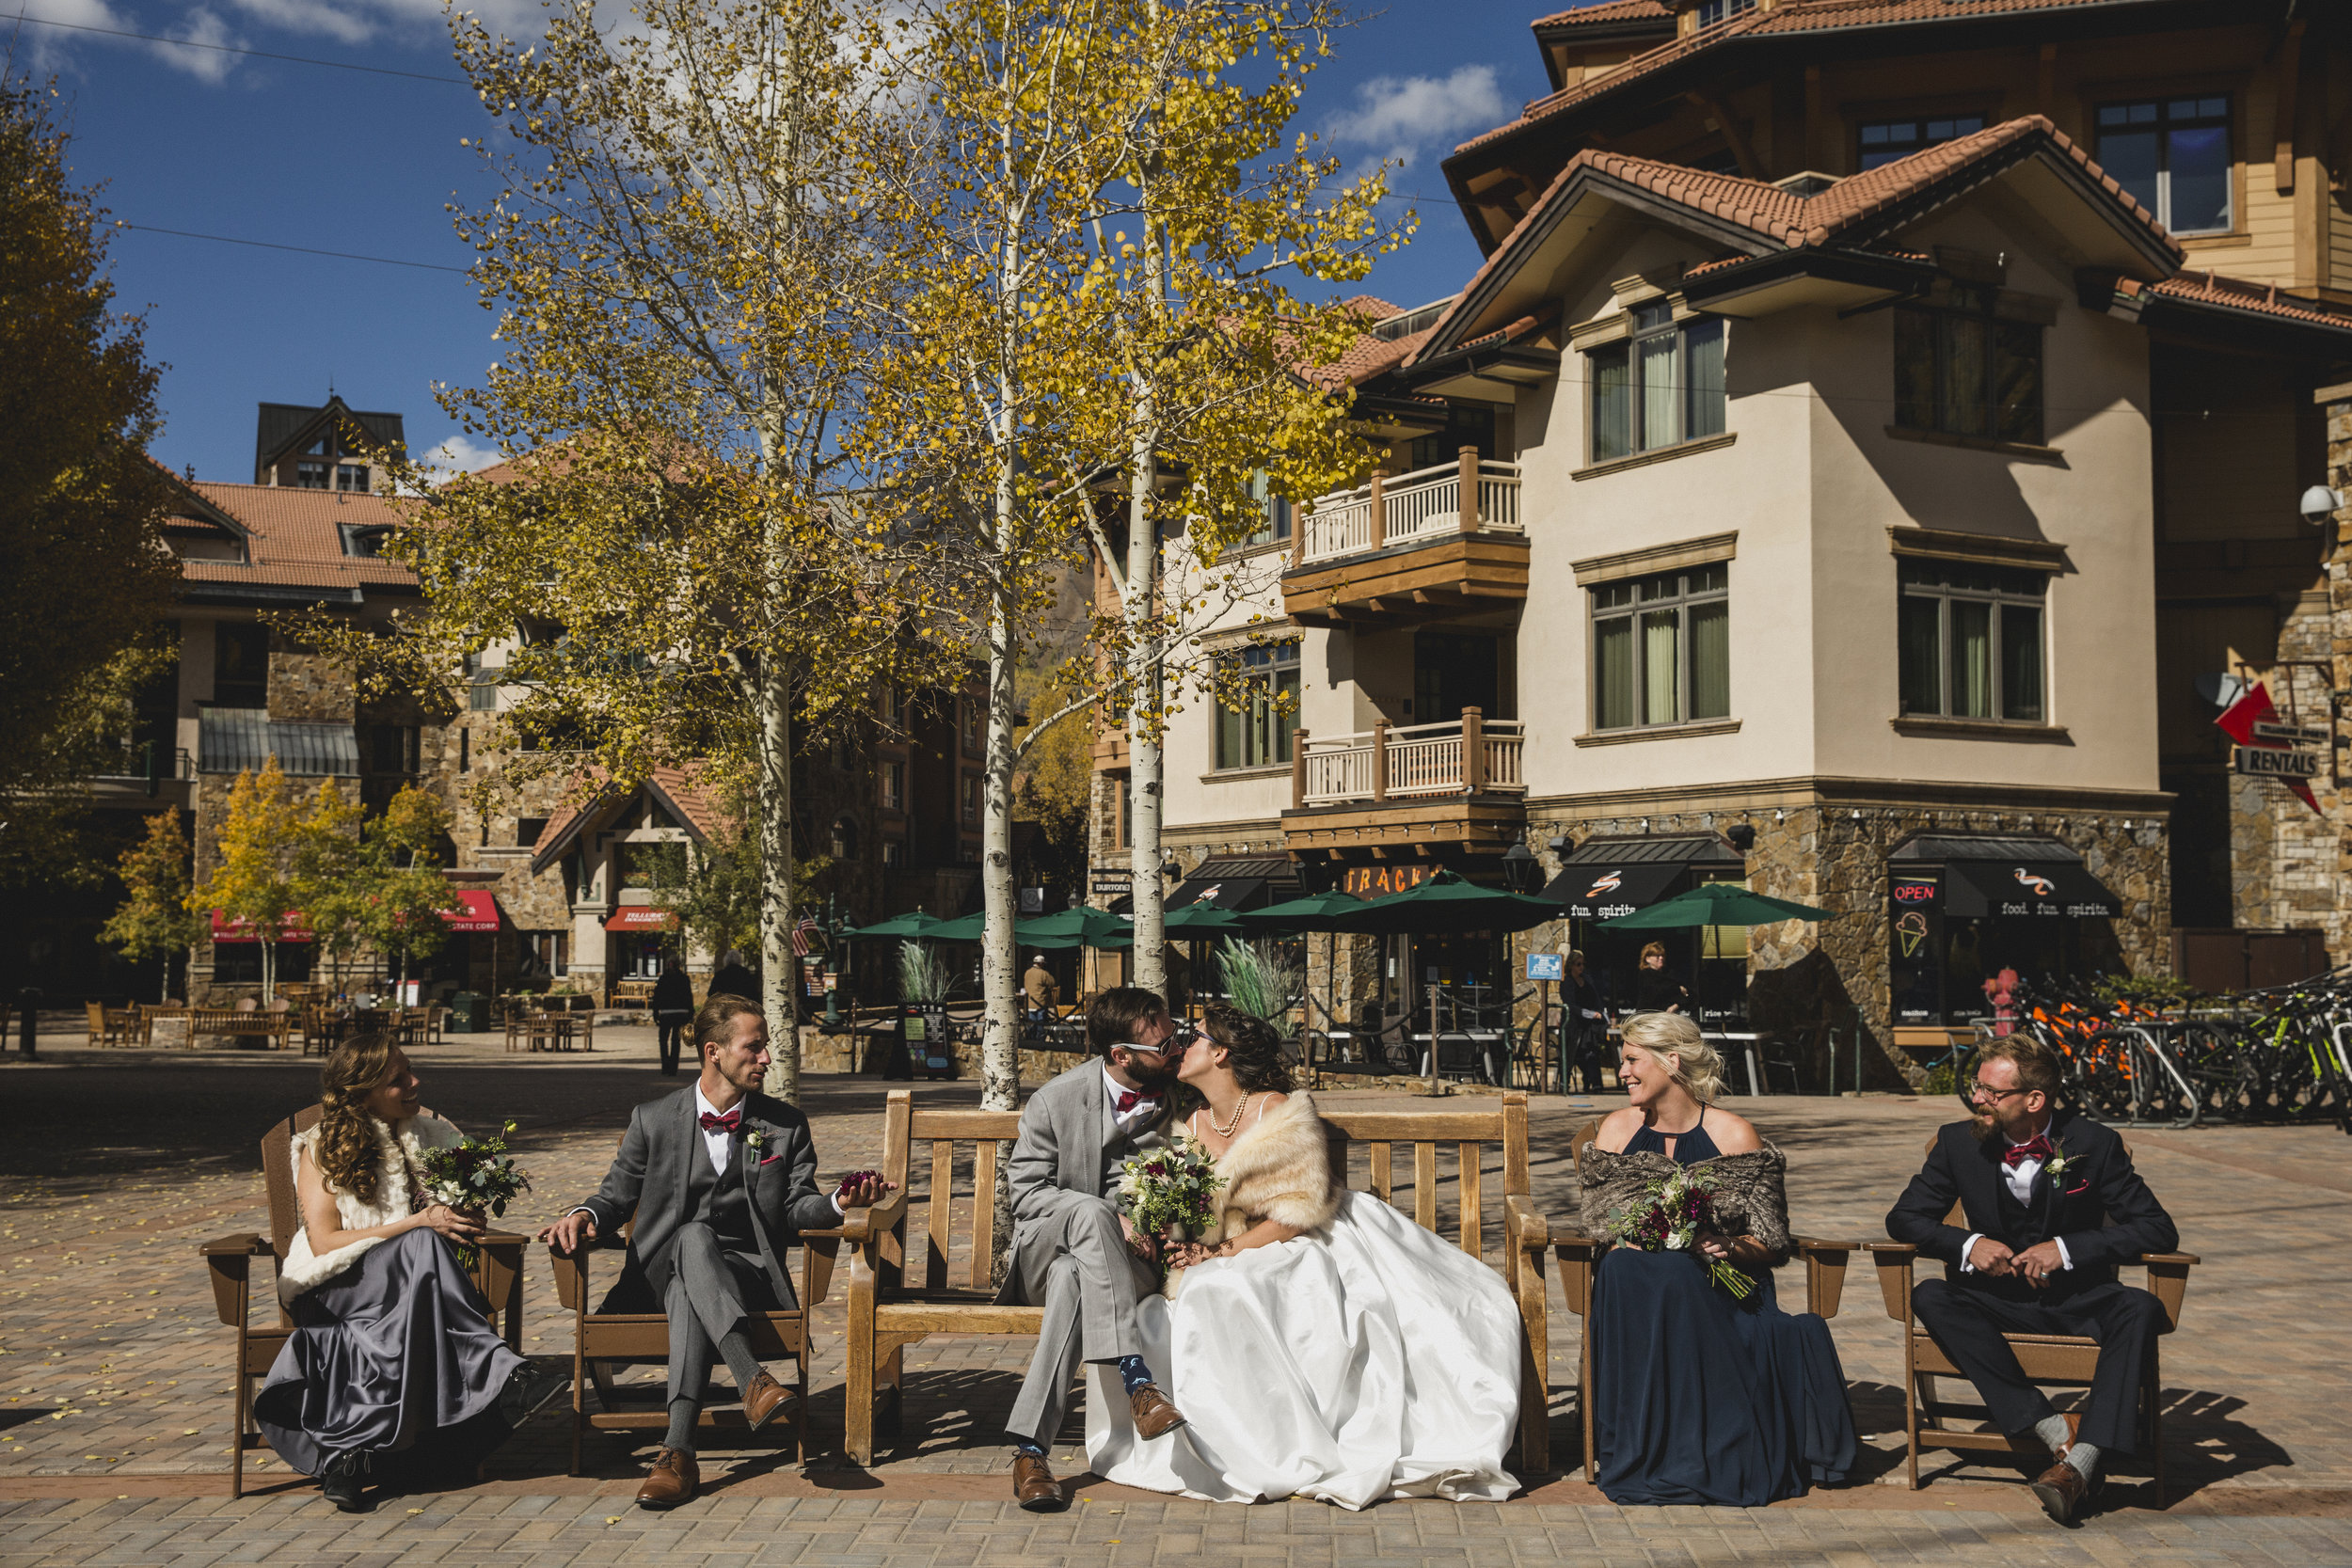 NE-LeahandAshtonphotography-Telluride-Wedding-Photography-9657.jpg